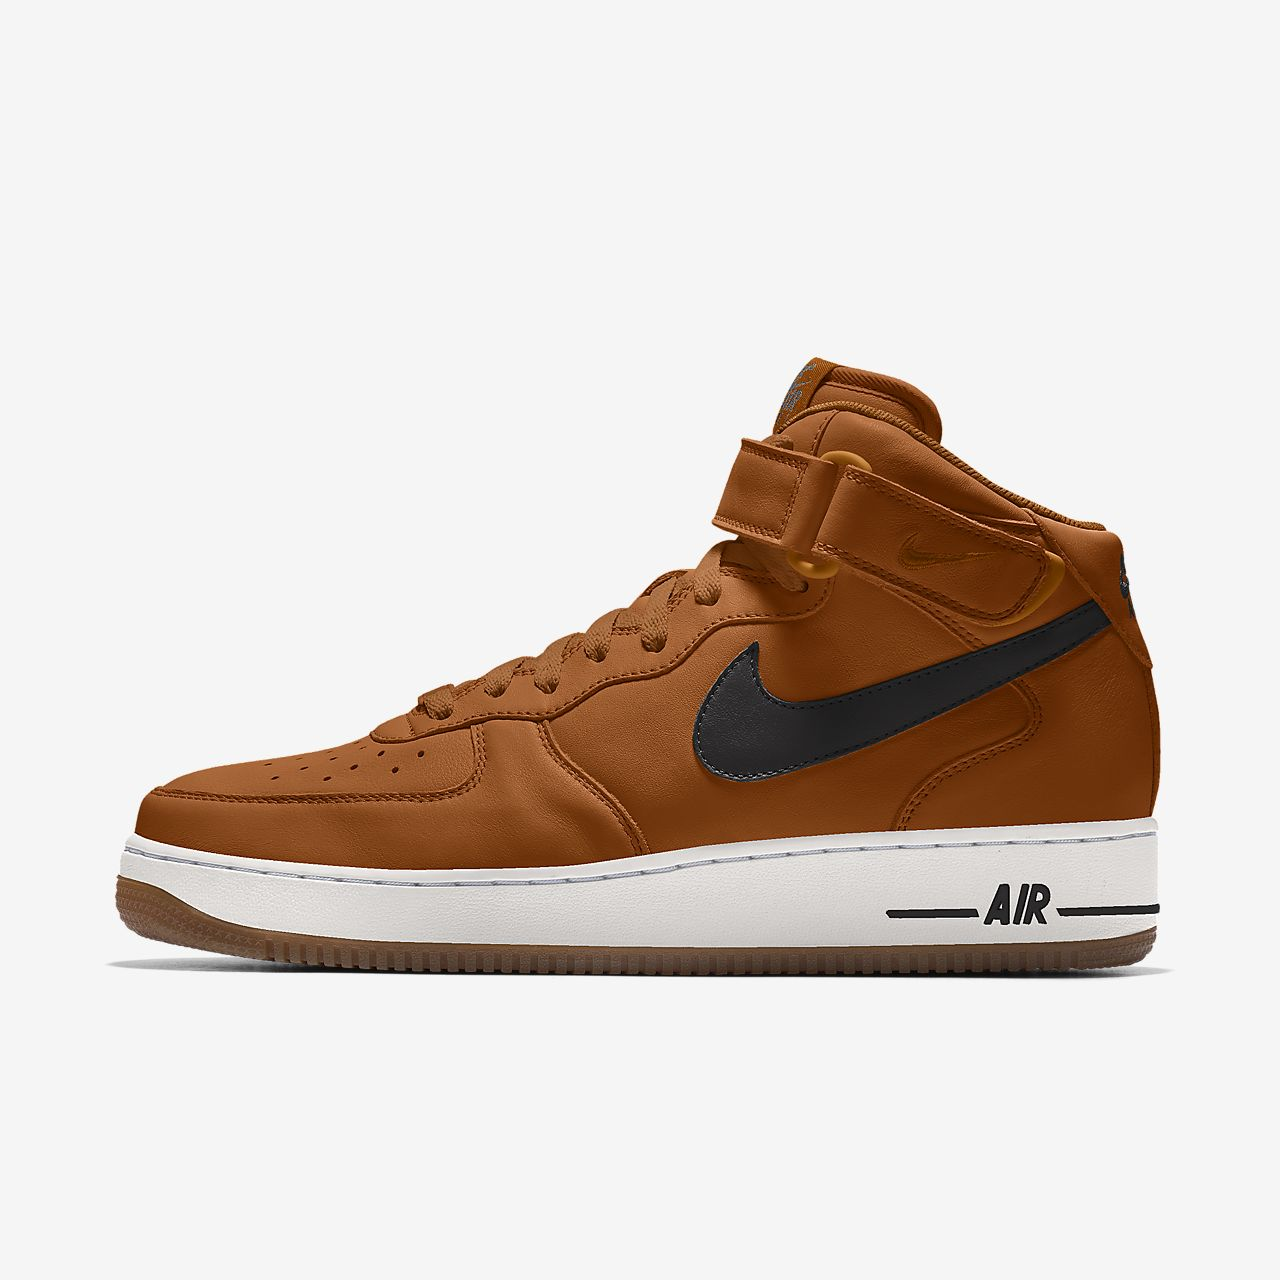 Specialdesignad sko Nike Air Force 1 Mid By You för män